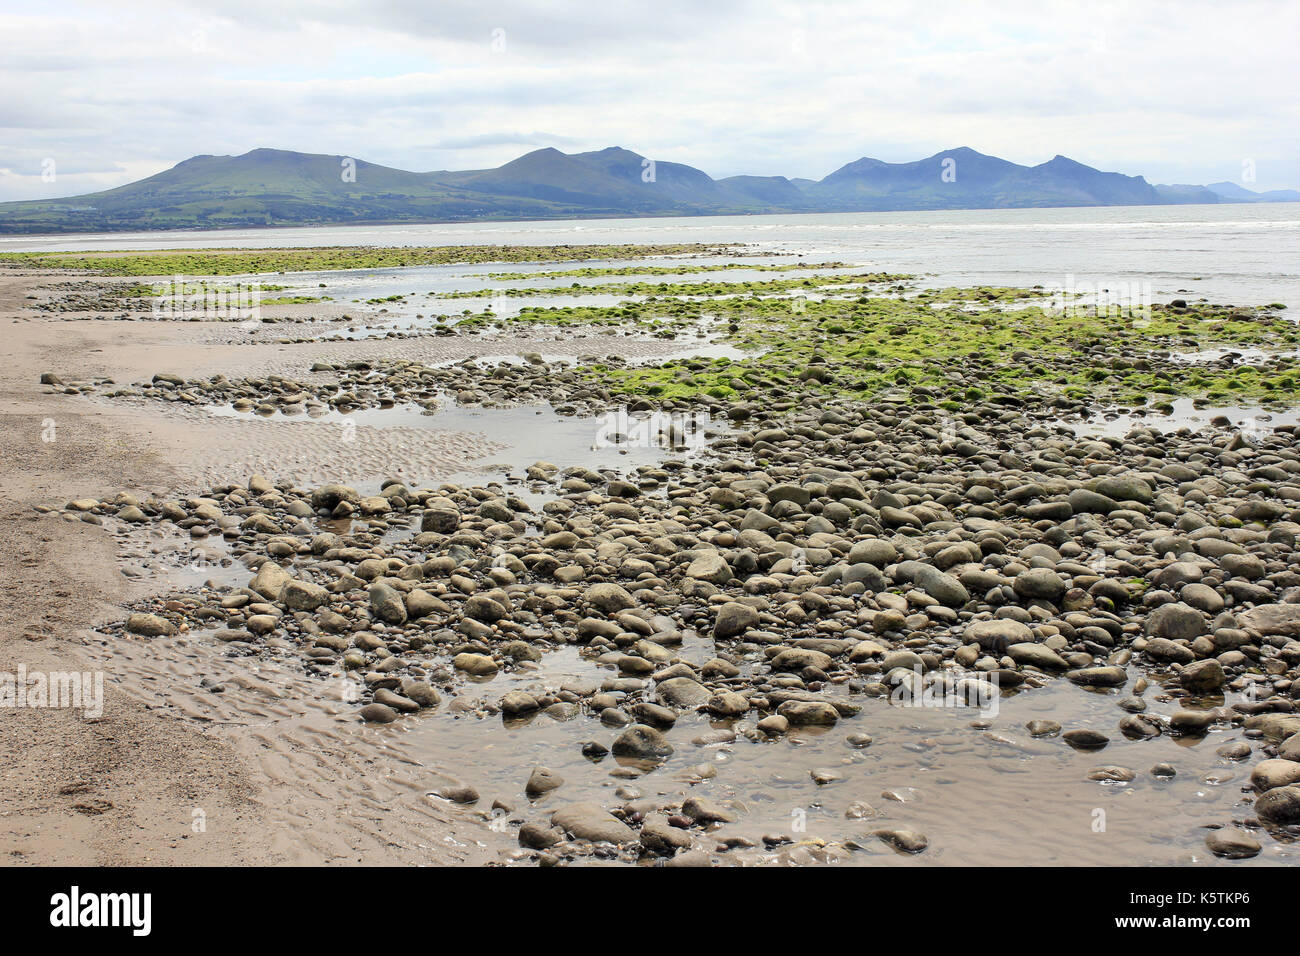 Pebbly Beach of Dinas Dinelle with Llyn Peninsula in Background - Stock Image